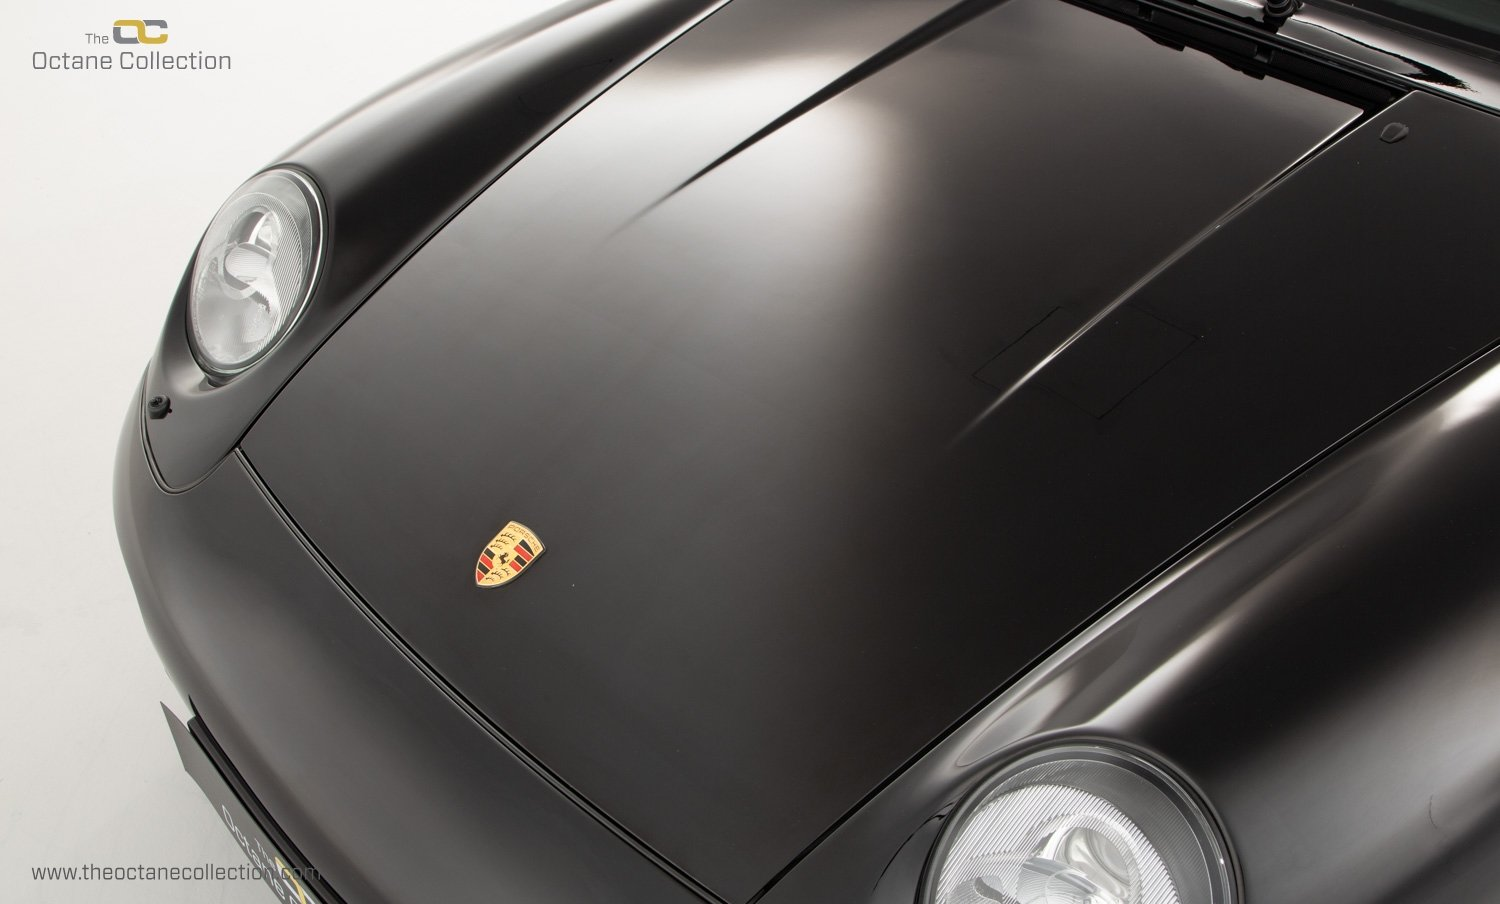 1998 PORSCHE 993 TURBO S // 1 OF 23 RHD CARS // UK C16 // FPSH For Sale (picture 3 of 24)